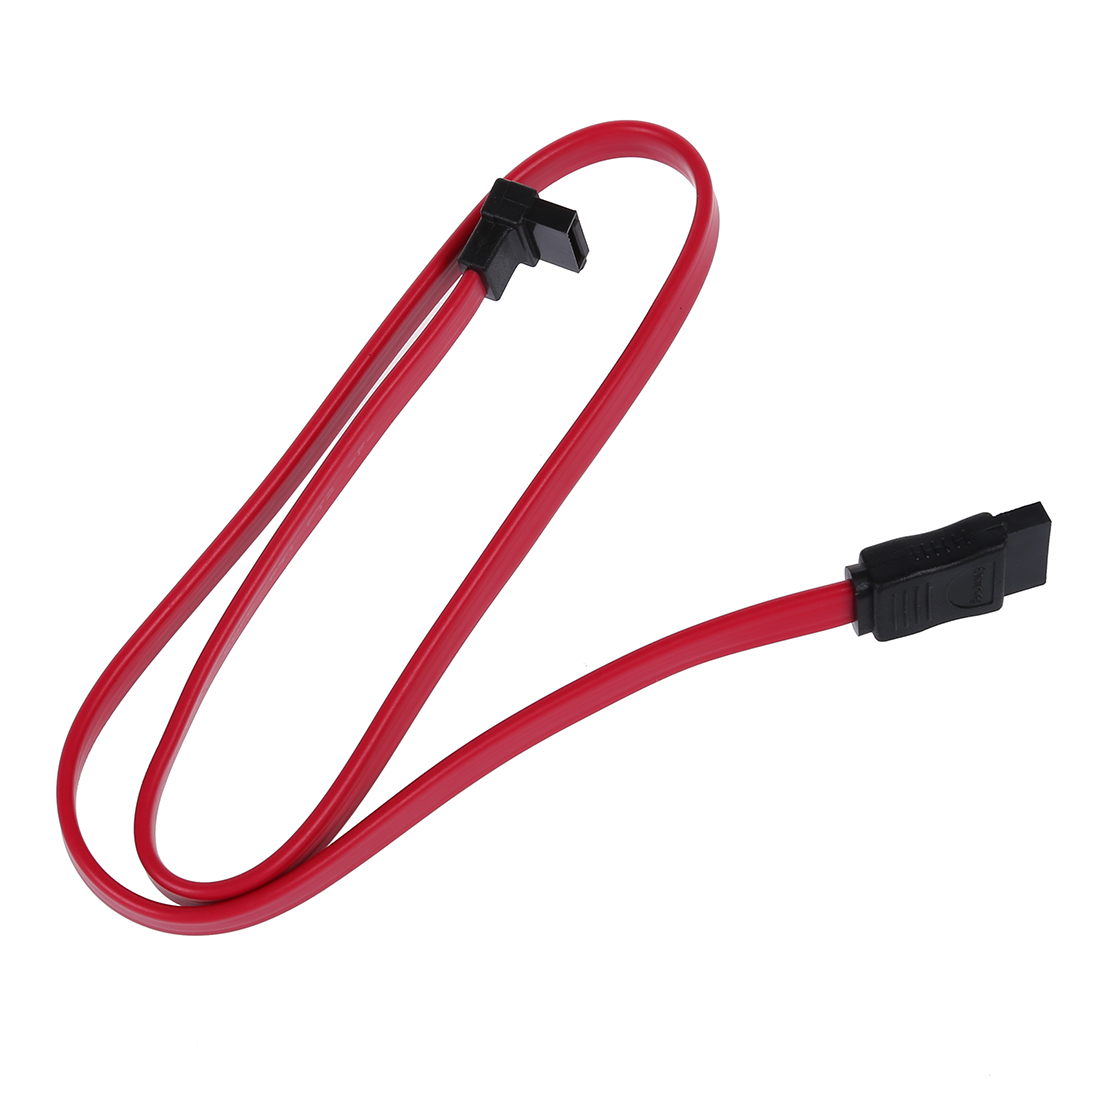 5x Red 19.7 Inch L-Shape Sata2 Male to Sata2 Male Cable For Sata / Sata2 Hard Disk Drive / CD-ROM / CDRW / DVD sata festplatte 1tb 7 2k sata2 ds4000 44x2459